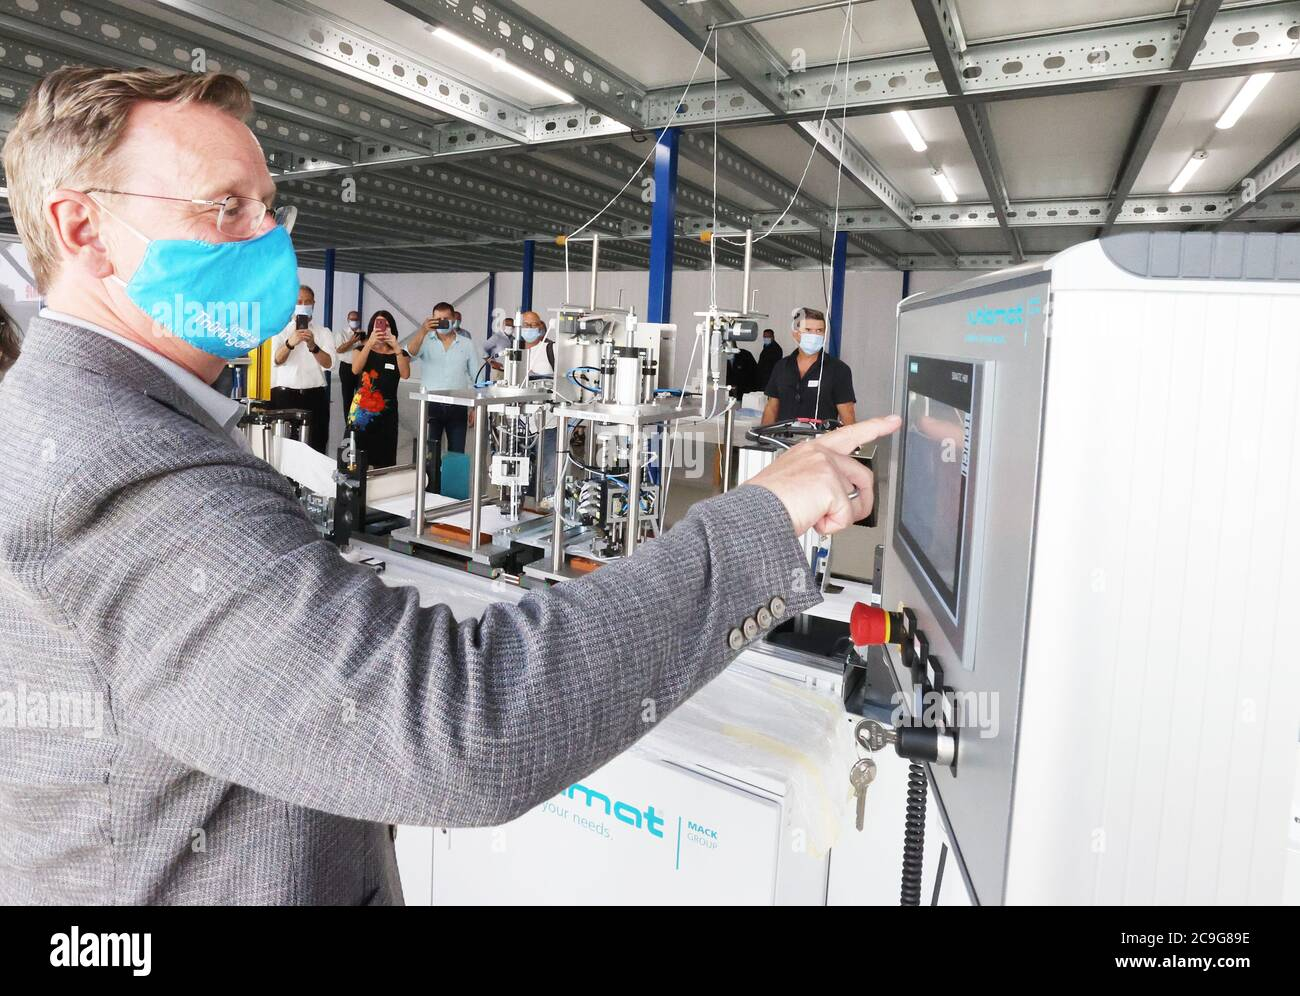 Weida Germany 31st July 2020 Bodo Ramelow Die Linke Minister President Of Thuringia Puts A Machine